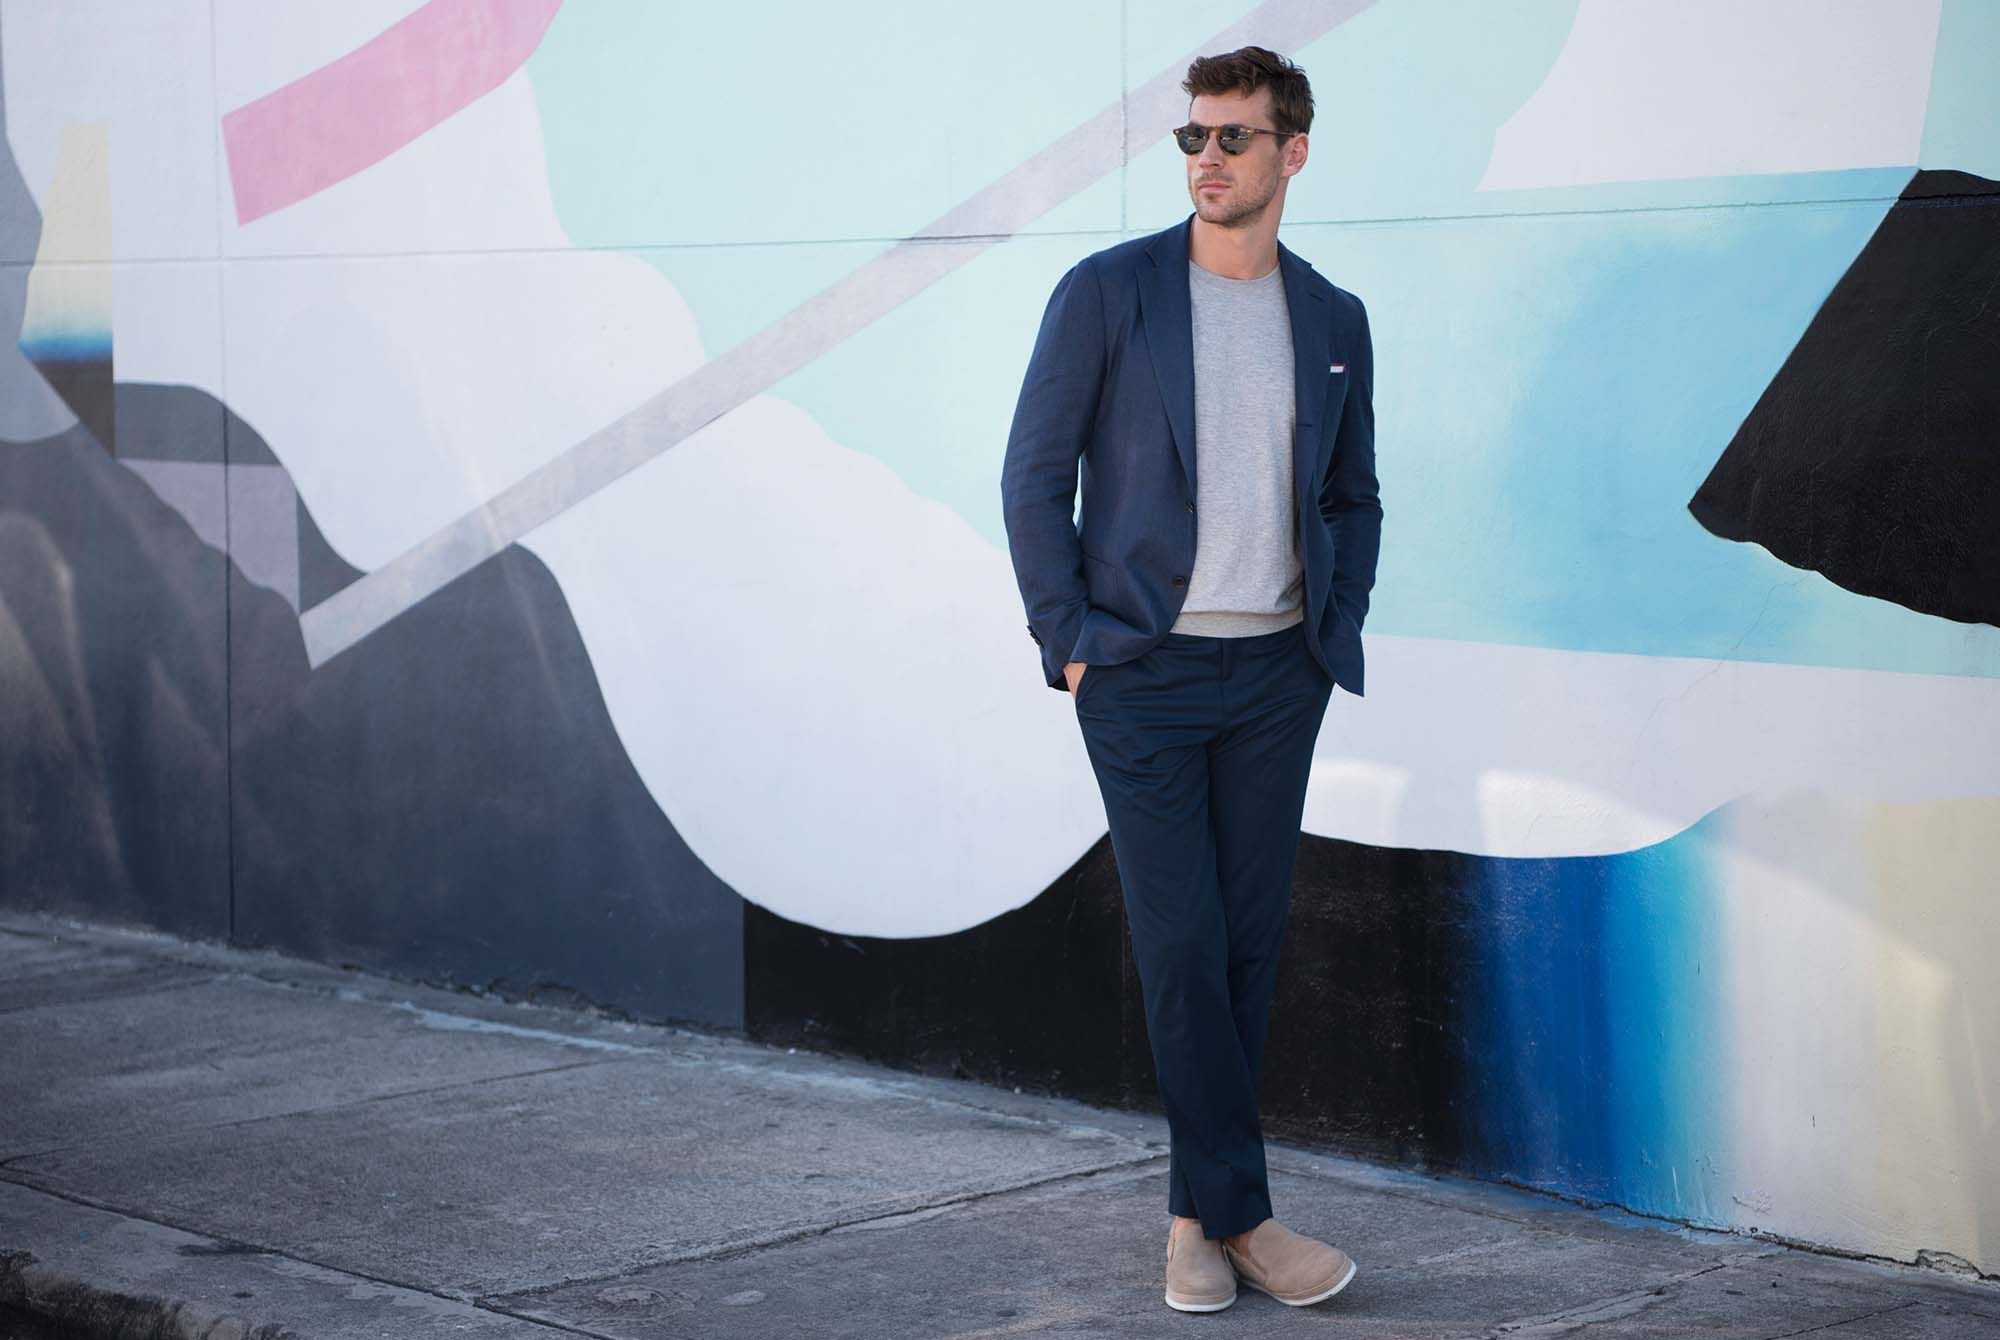 Pairing a suit and sneakers should look breezy and effortless